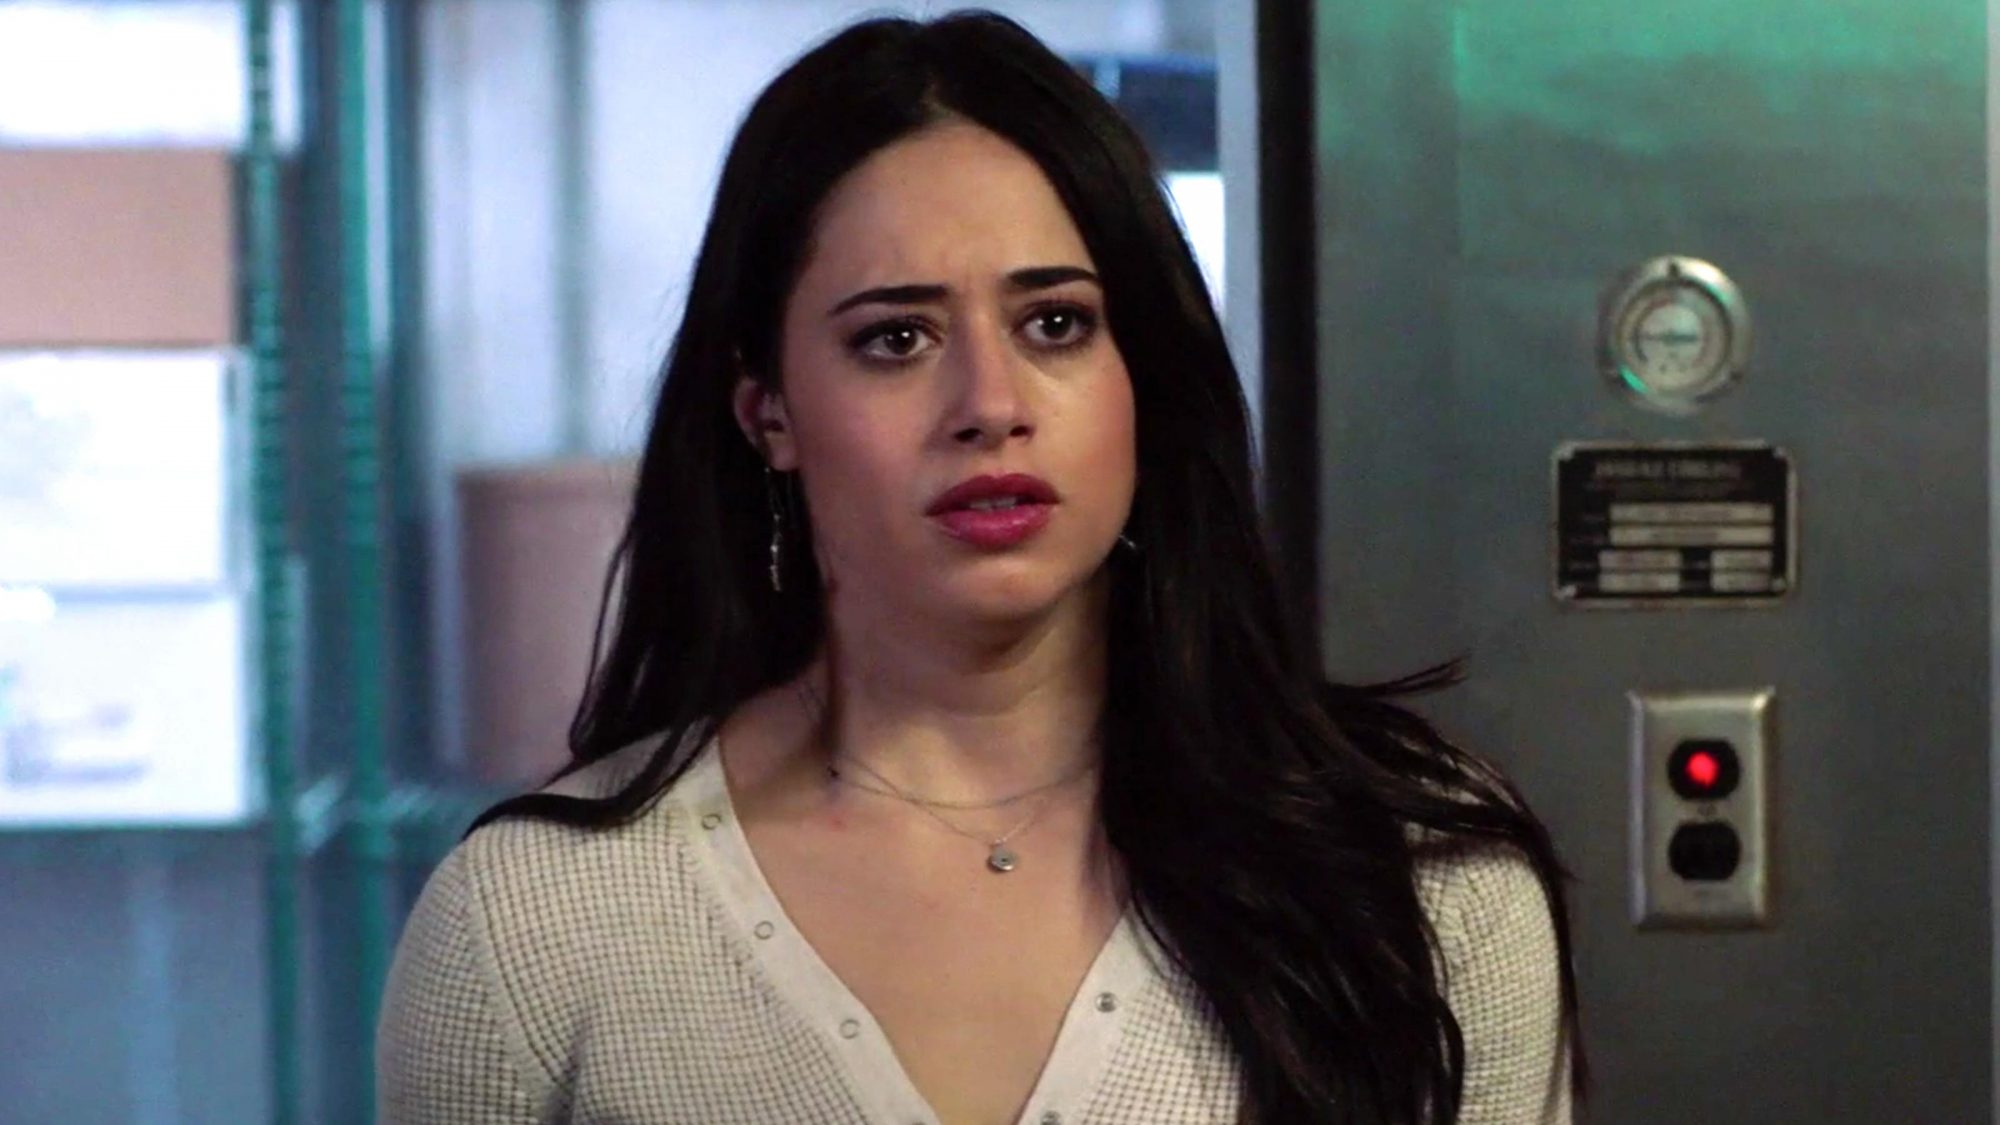 """Roswell, New Mexico (screen grab) -- """"Recovering the Satellites"""" -- Image Number: ROS113a_0447b2.jpg -- Pictured: Jeanine Mason as Liz -- Photo: The CW -- © 2019 The CW Network, LLC. All rights reserved https://www.cwtv.com/shows/roswell-new-mexico/recovering-the-satellites-trailer/"""